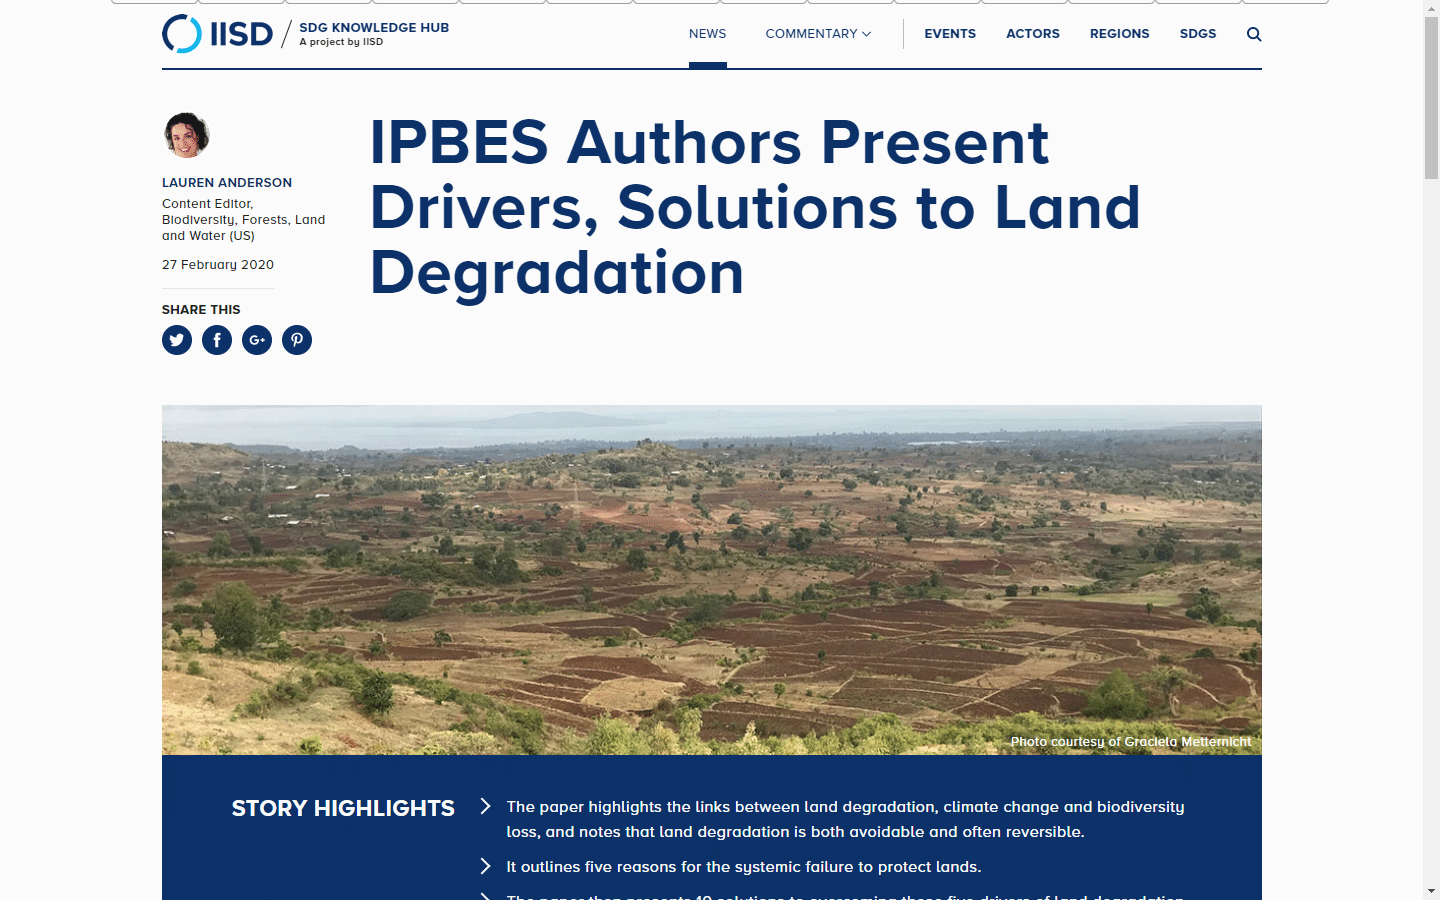 Article - IPBES Authors Present Drivers, Solutions to Land Degradation